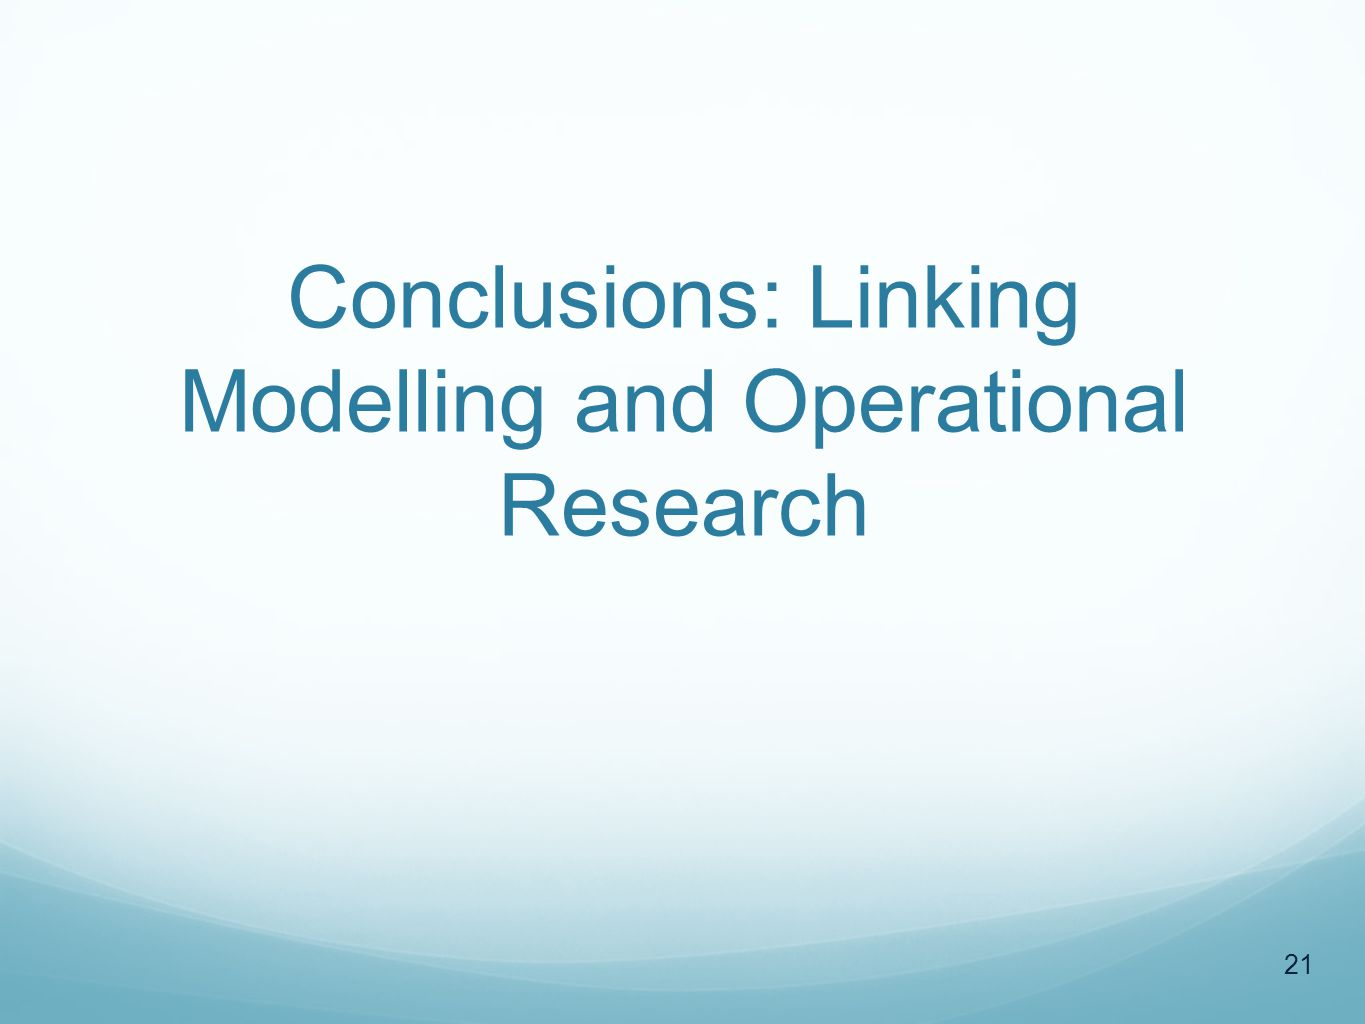 Conclusions: Linking Modelling and Operational Research